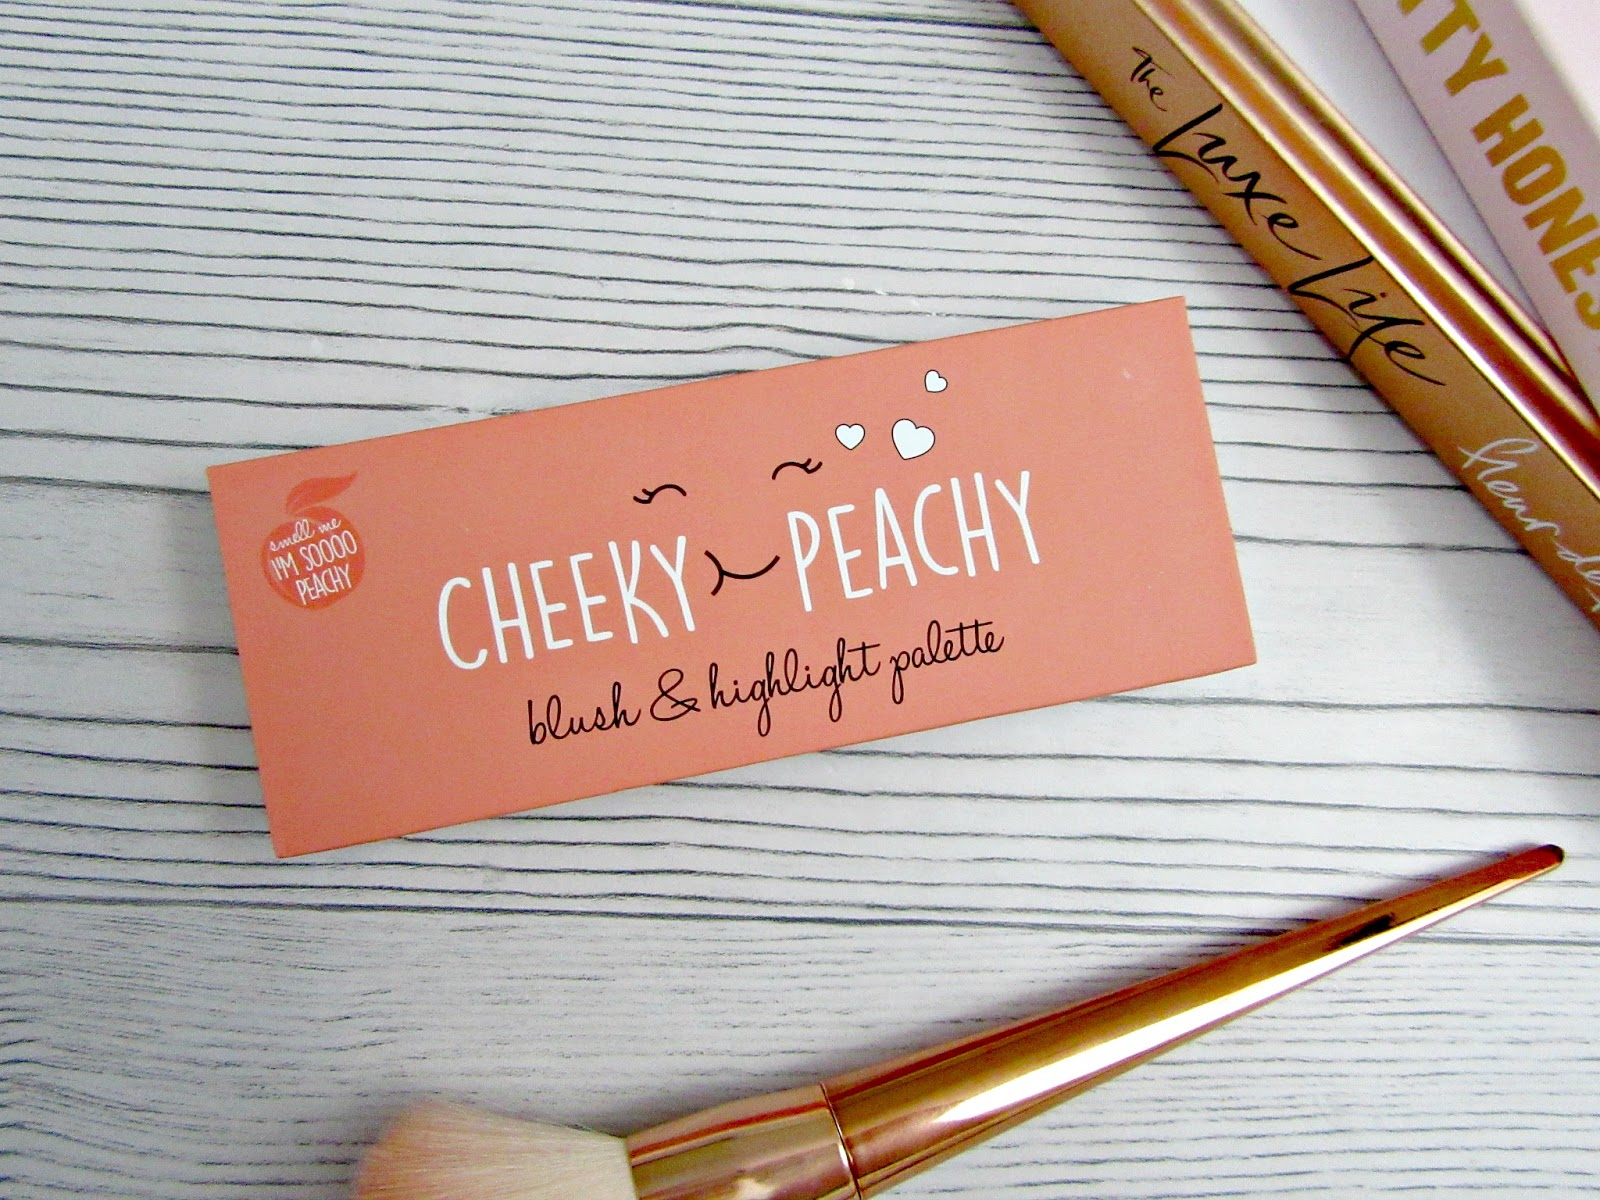 Cheeky peachy blush and highlight palette